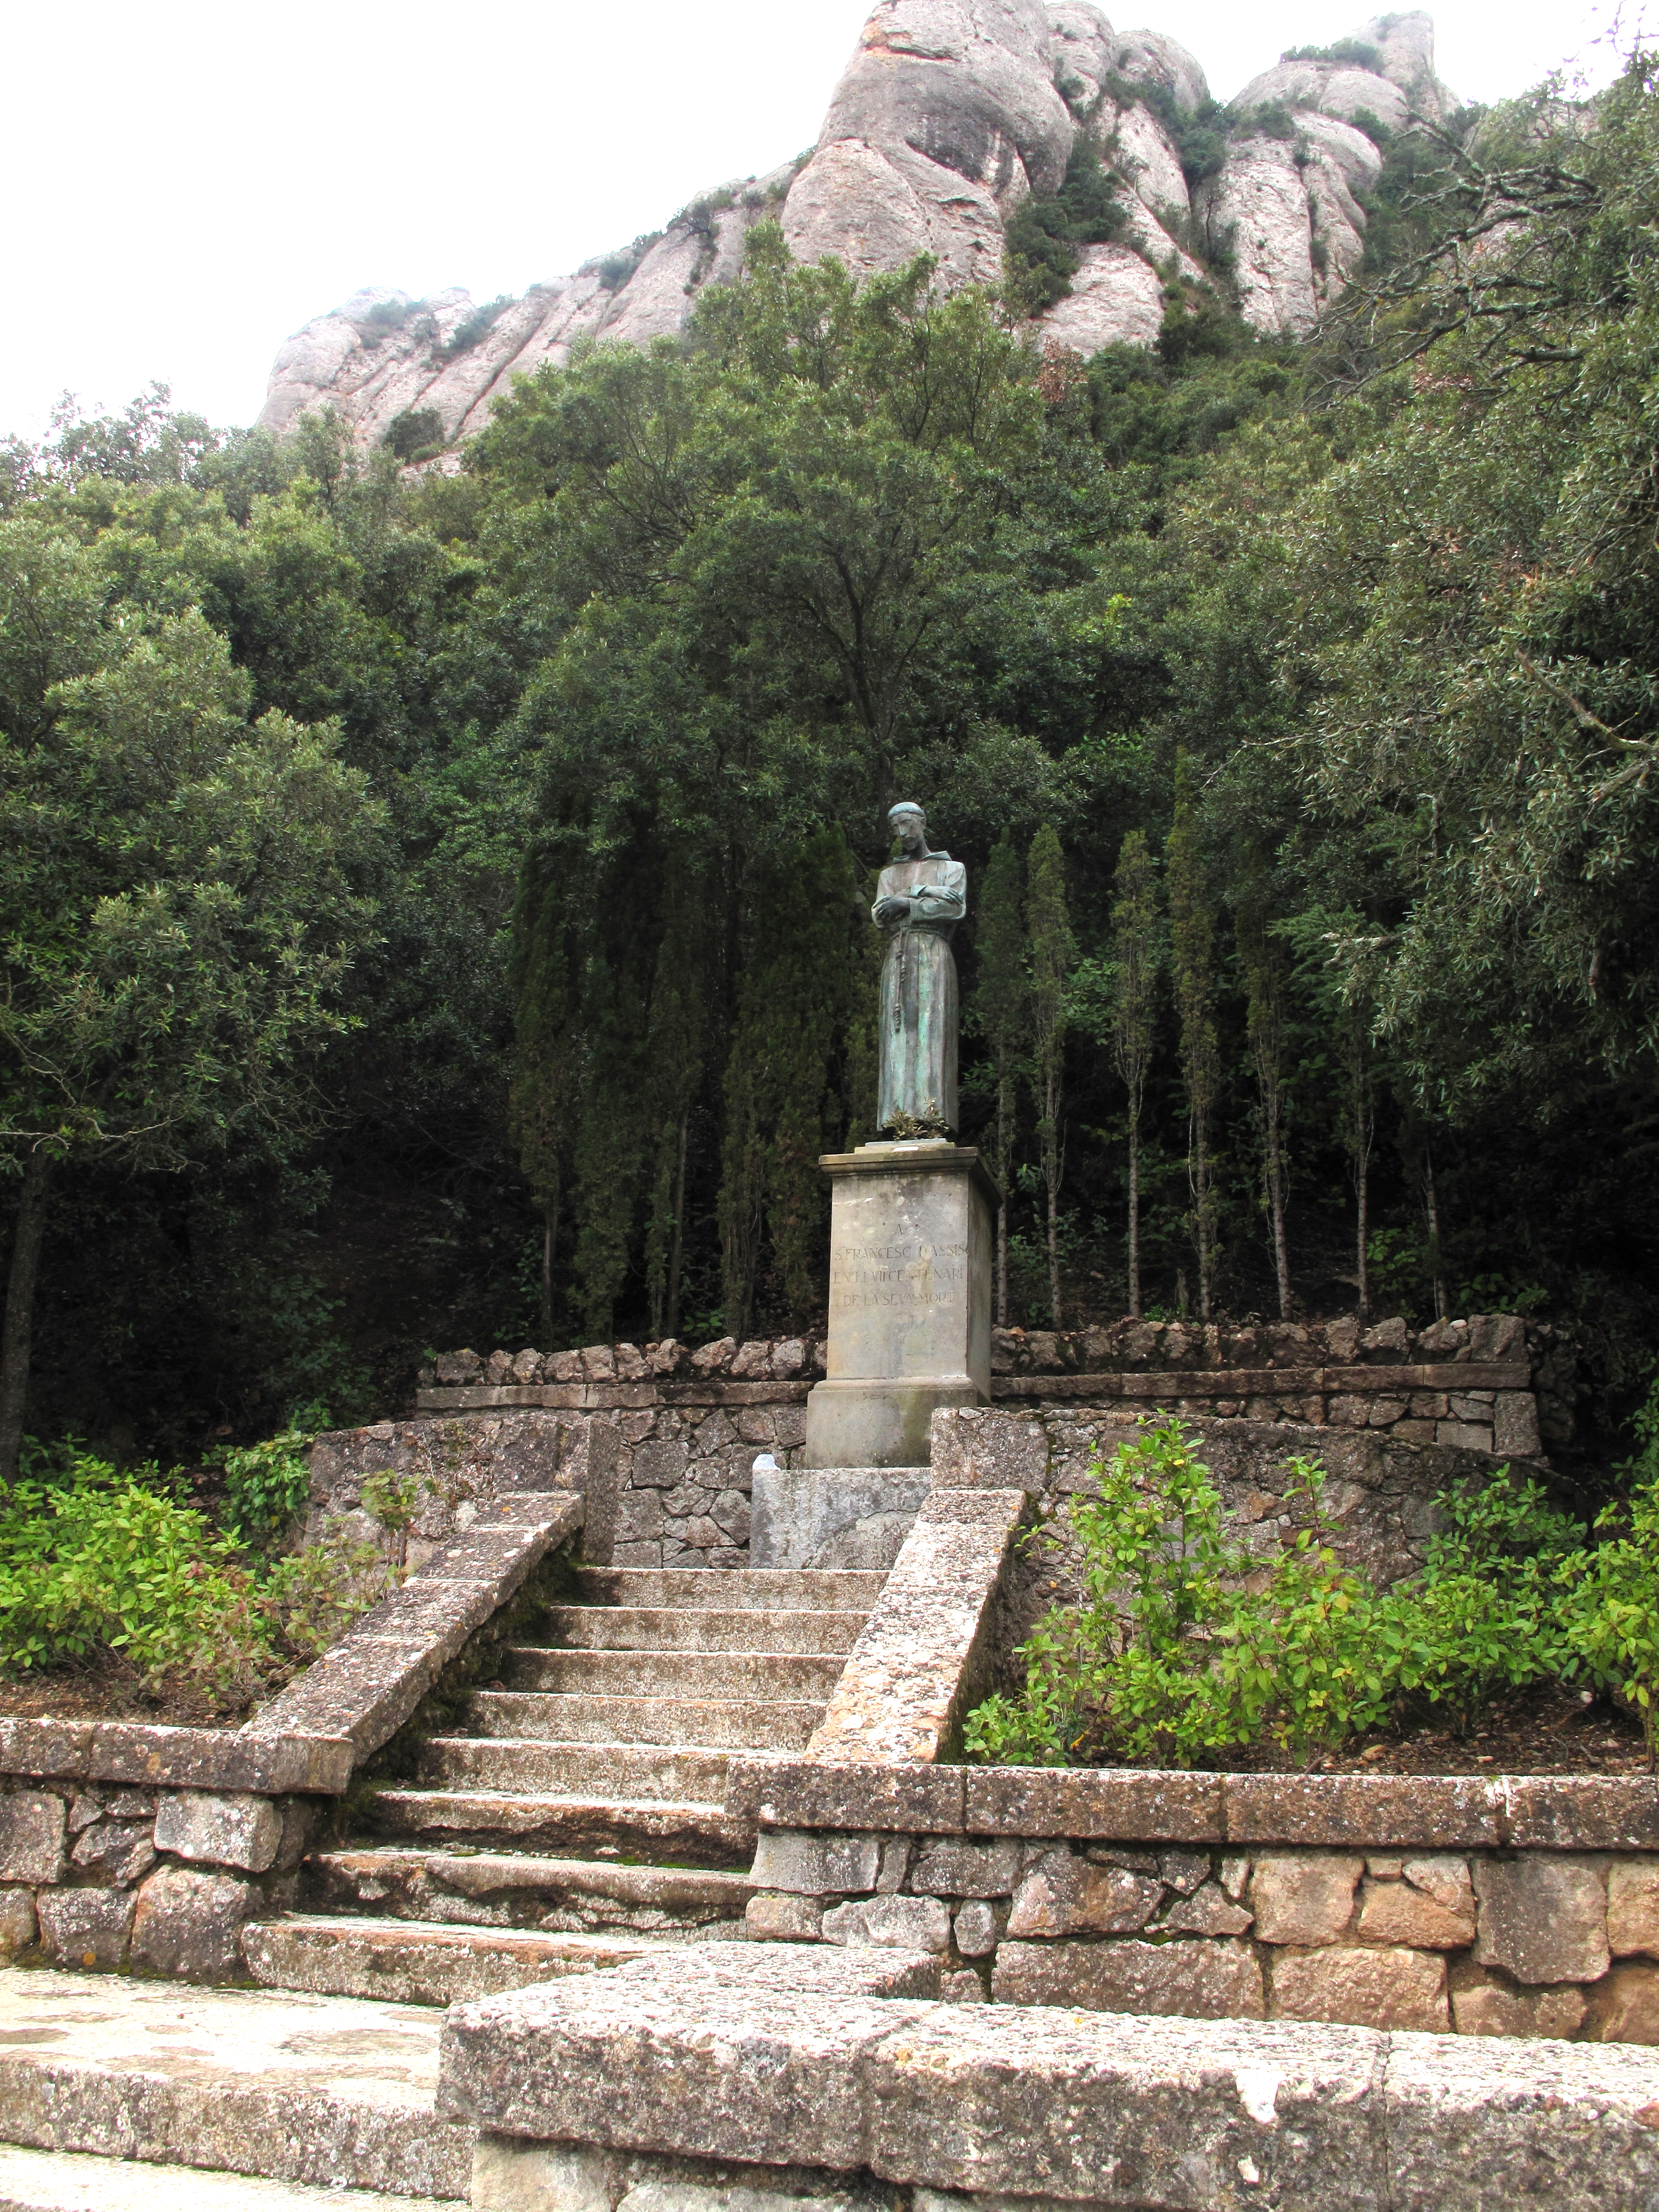 St Francis of Assisi statue hidden in green paths at the monastery on the mountains